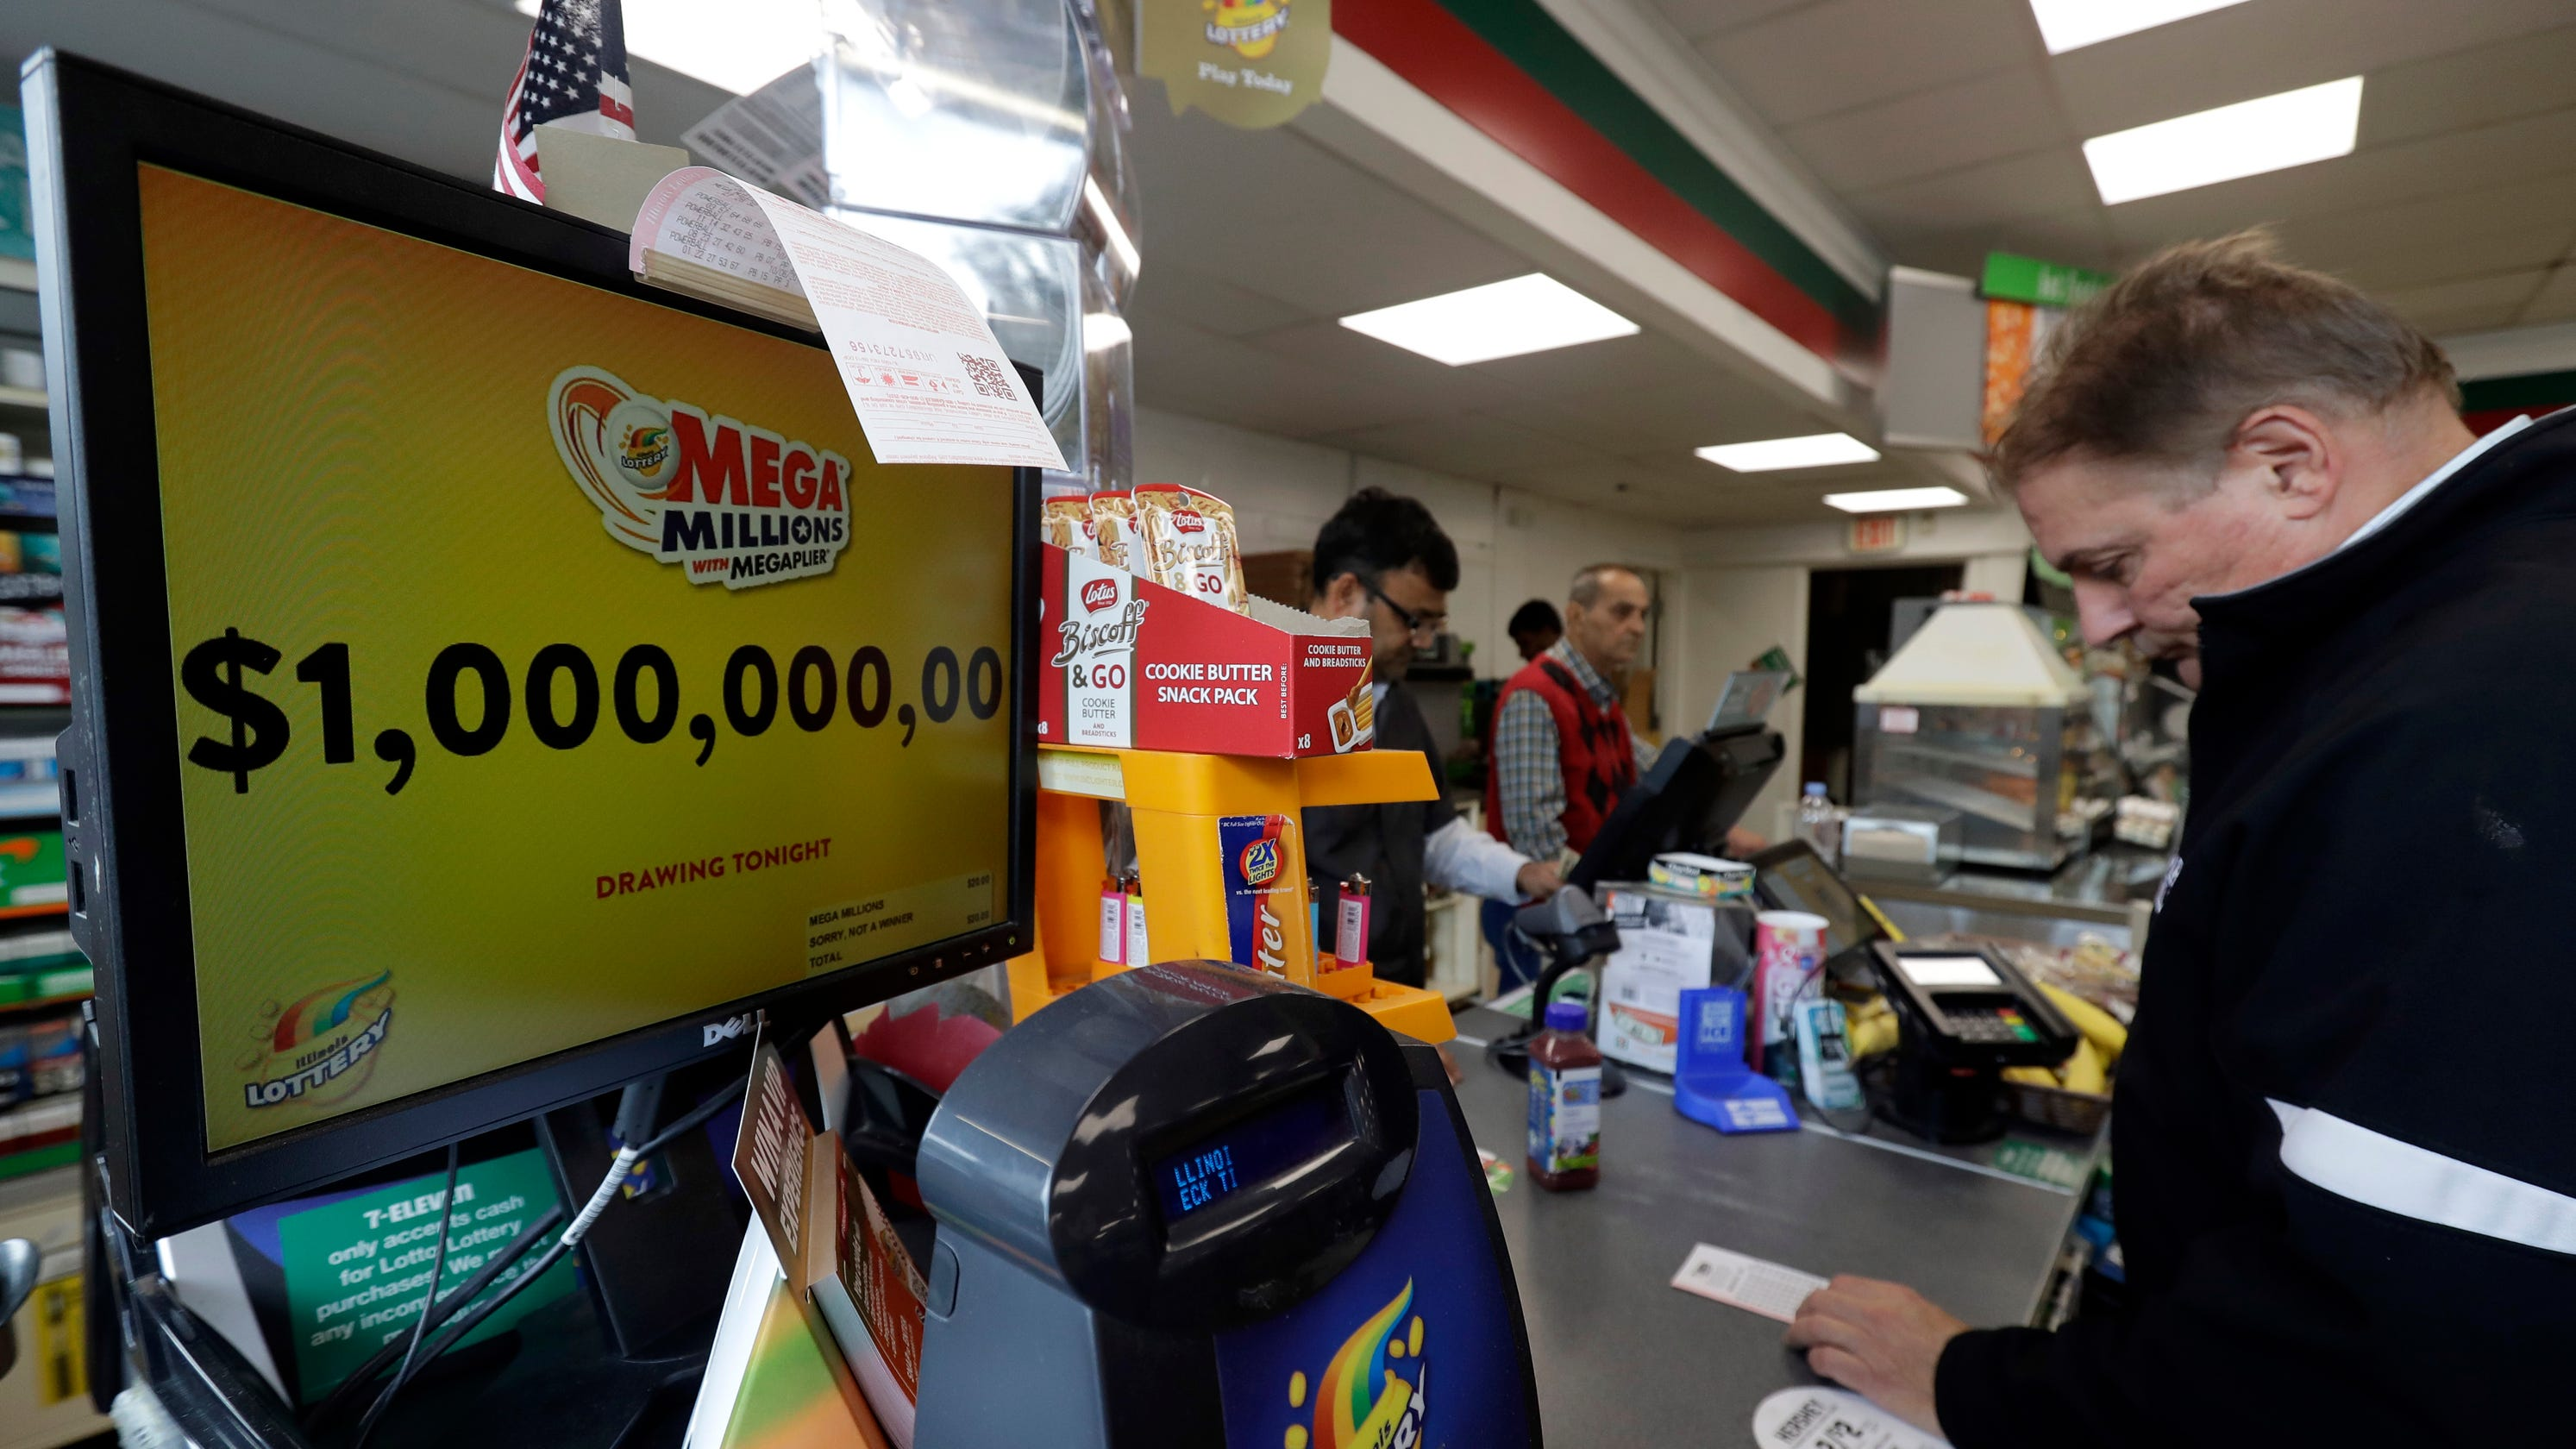 What Mega Millions Numbers Are Likely To Win Statistics Professor